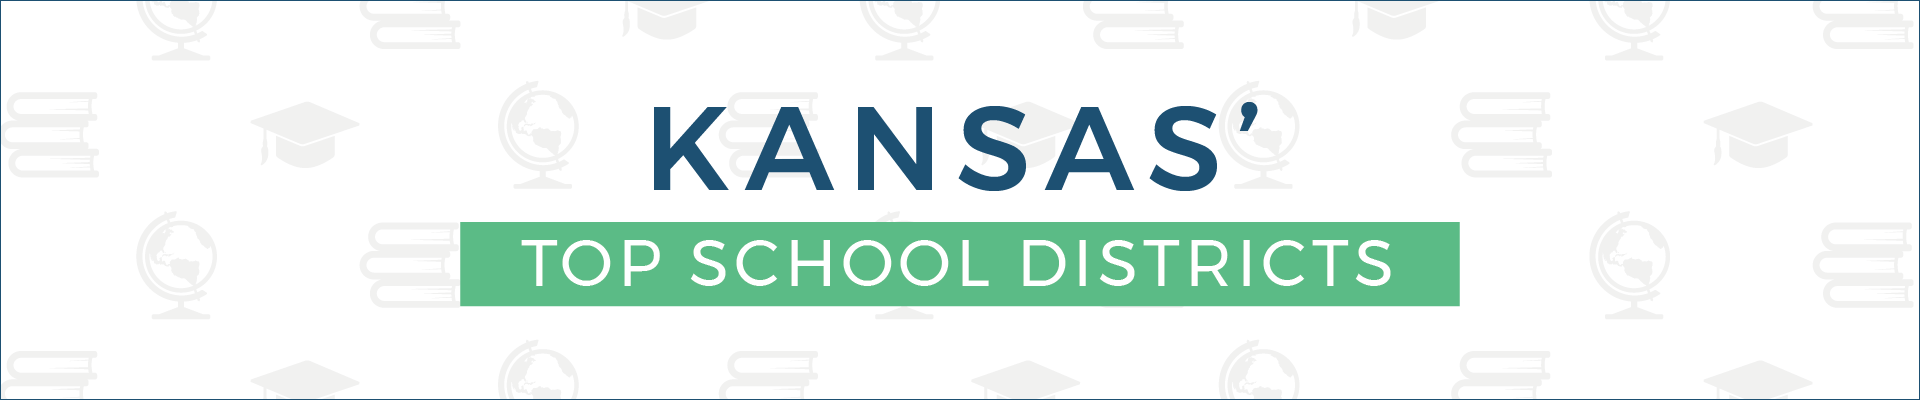 kansas_top_school_district_banner_2020